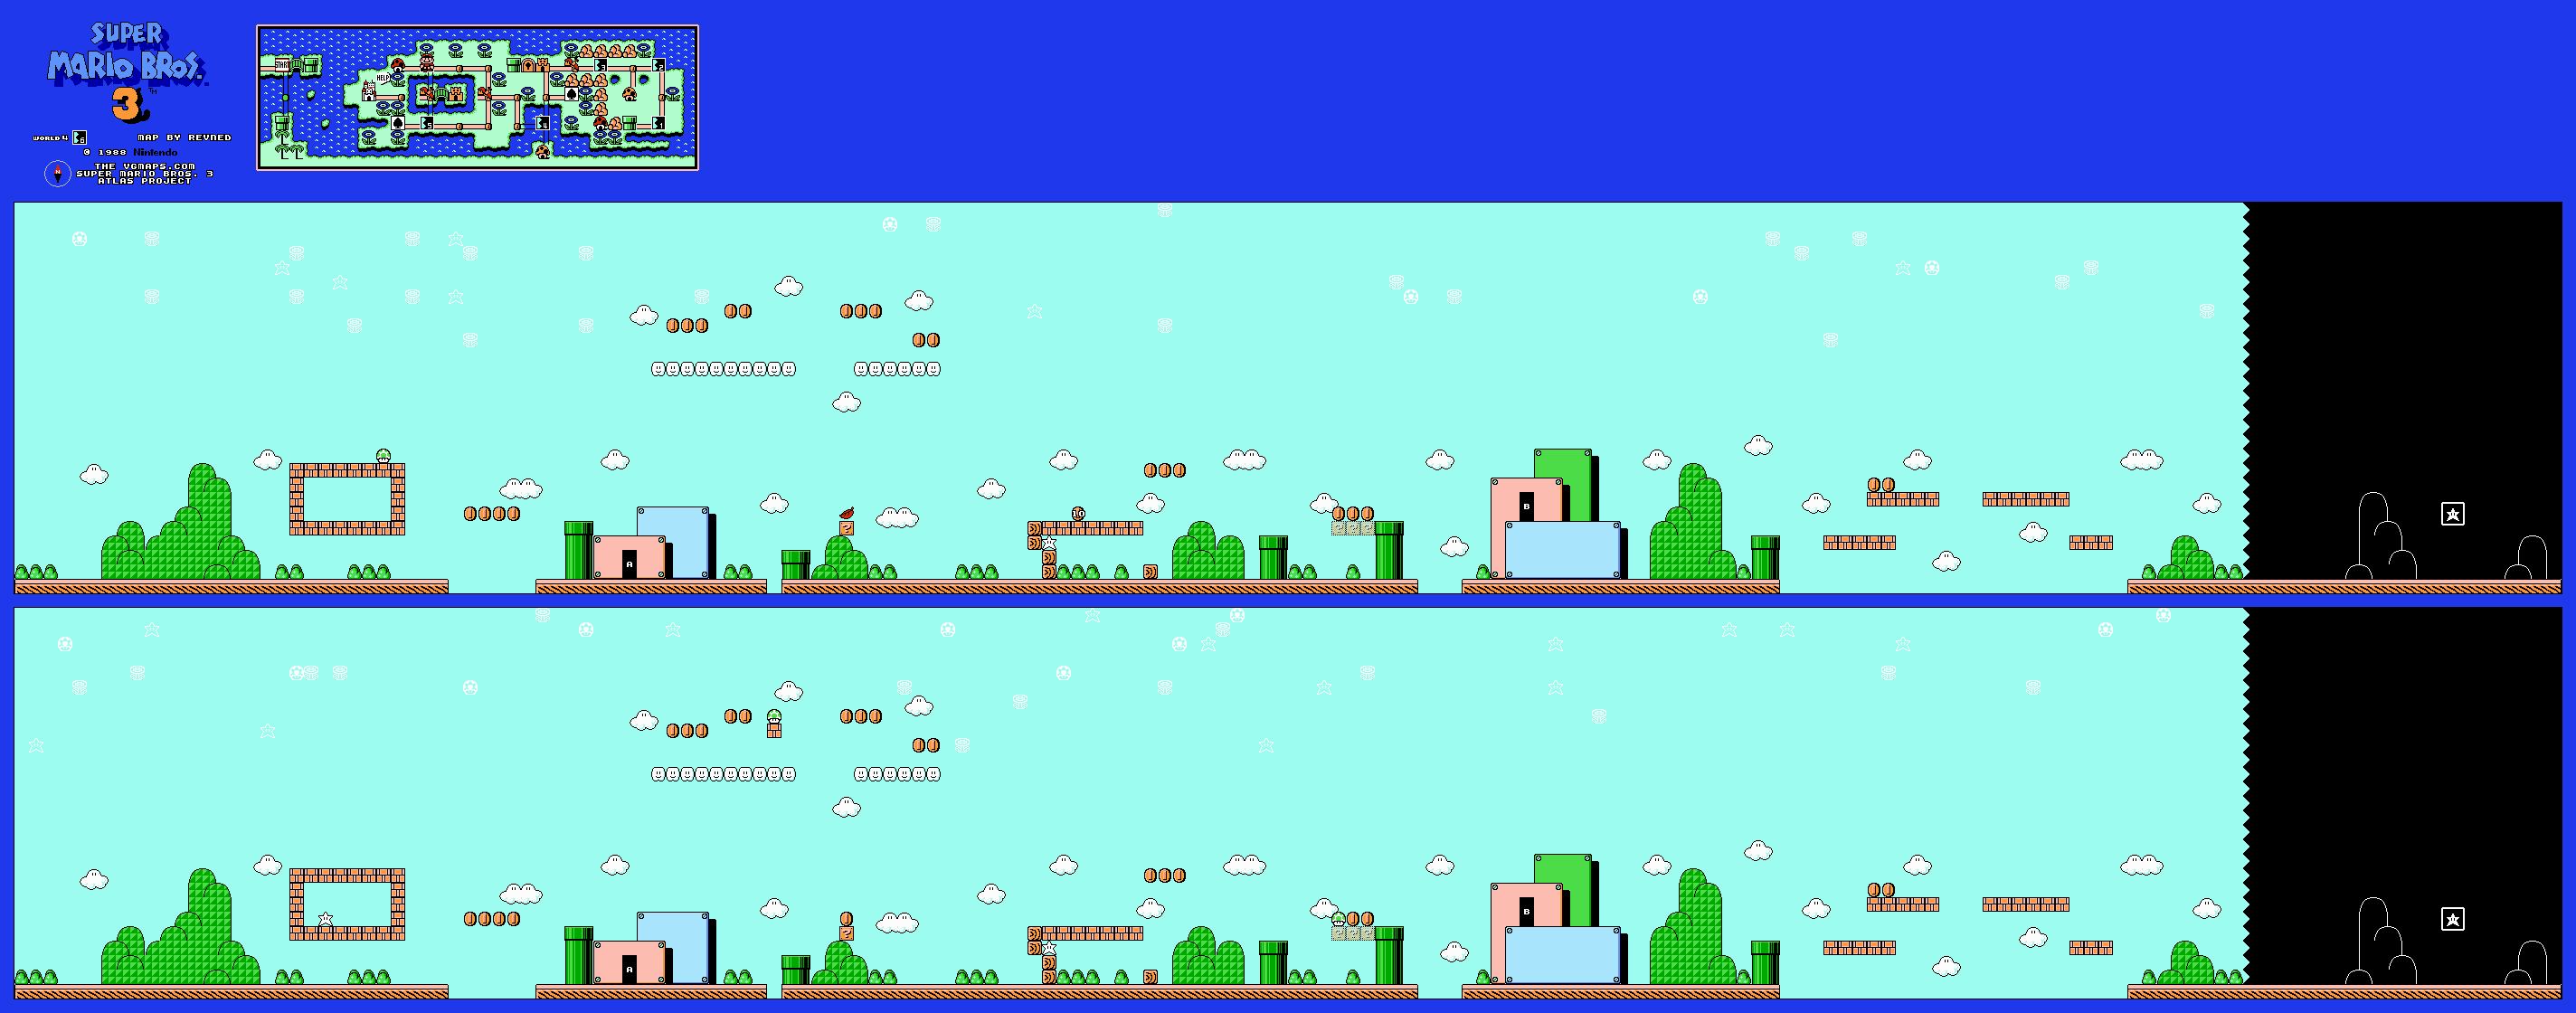 Super Mario Bros 3 Revned S Video Game Maps